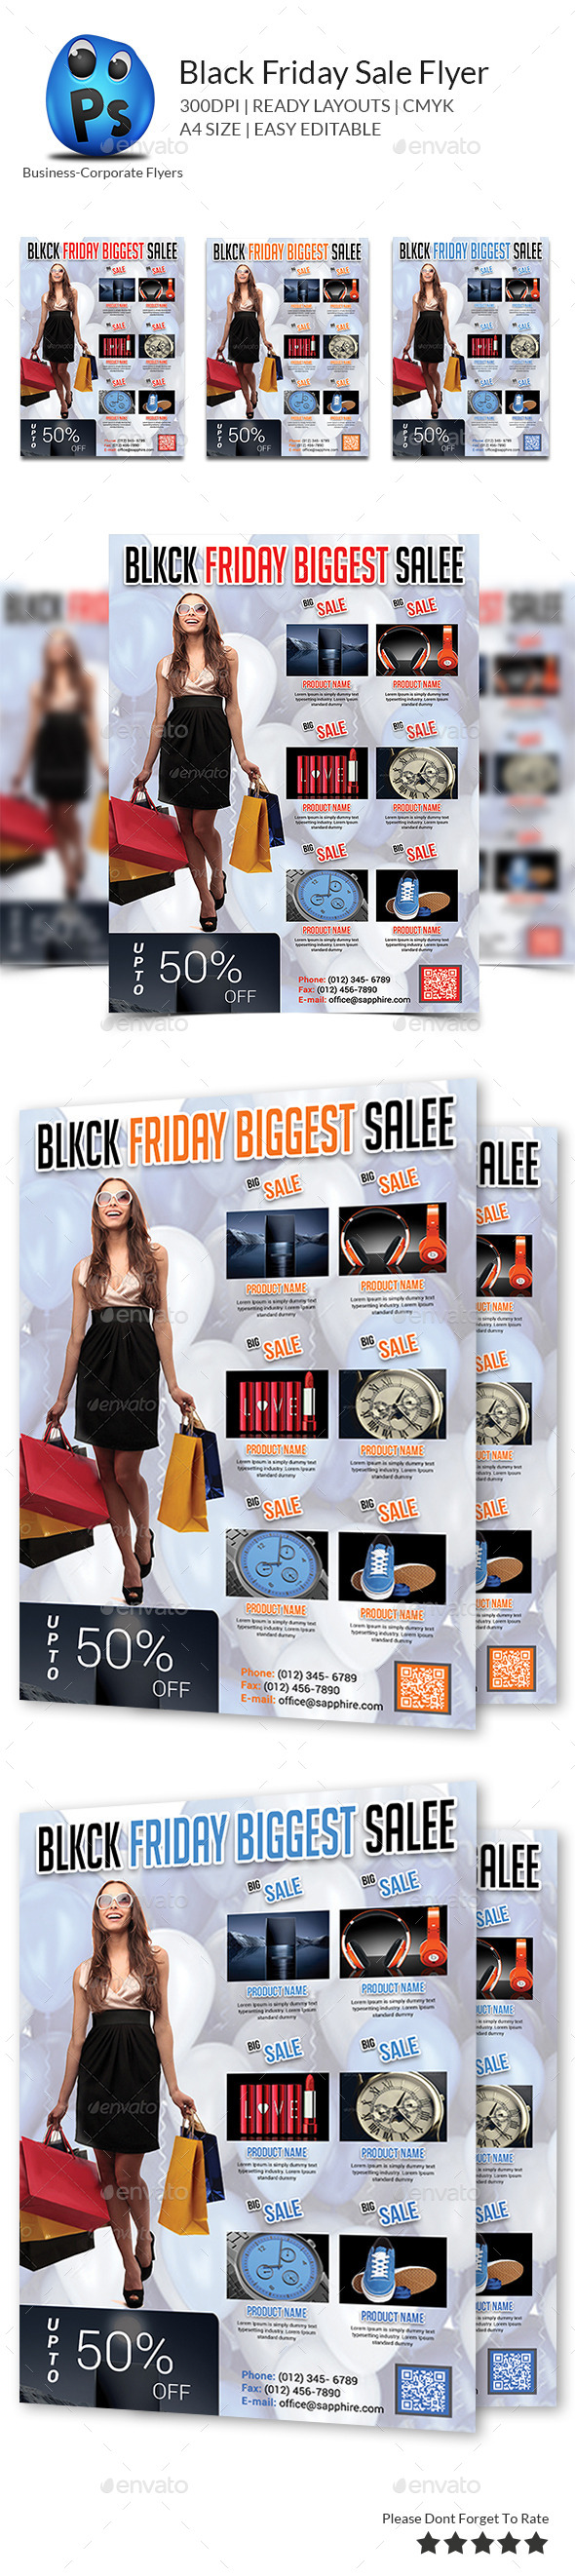 Black Friday Sale Flyer - Corporate Flyers